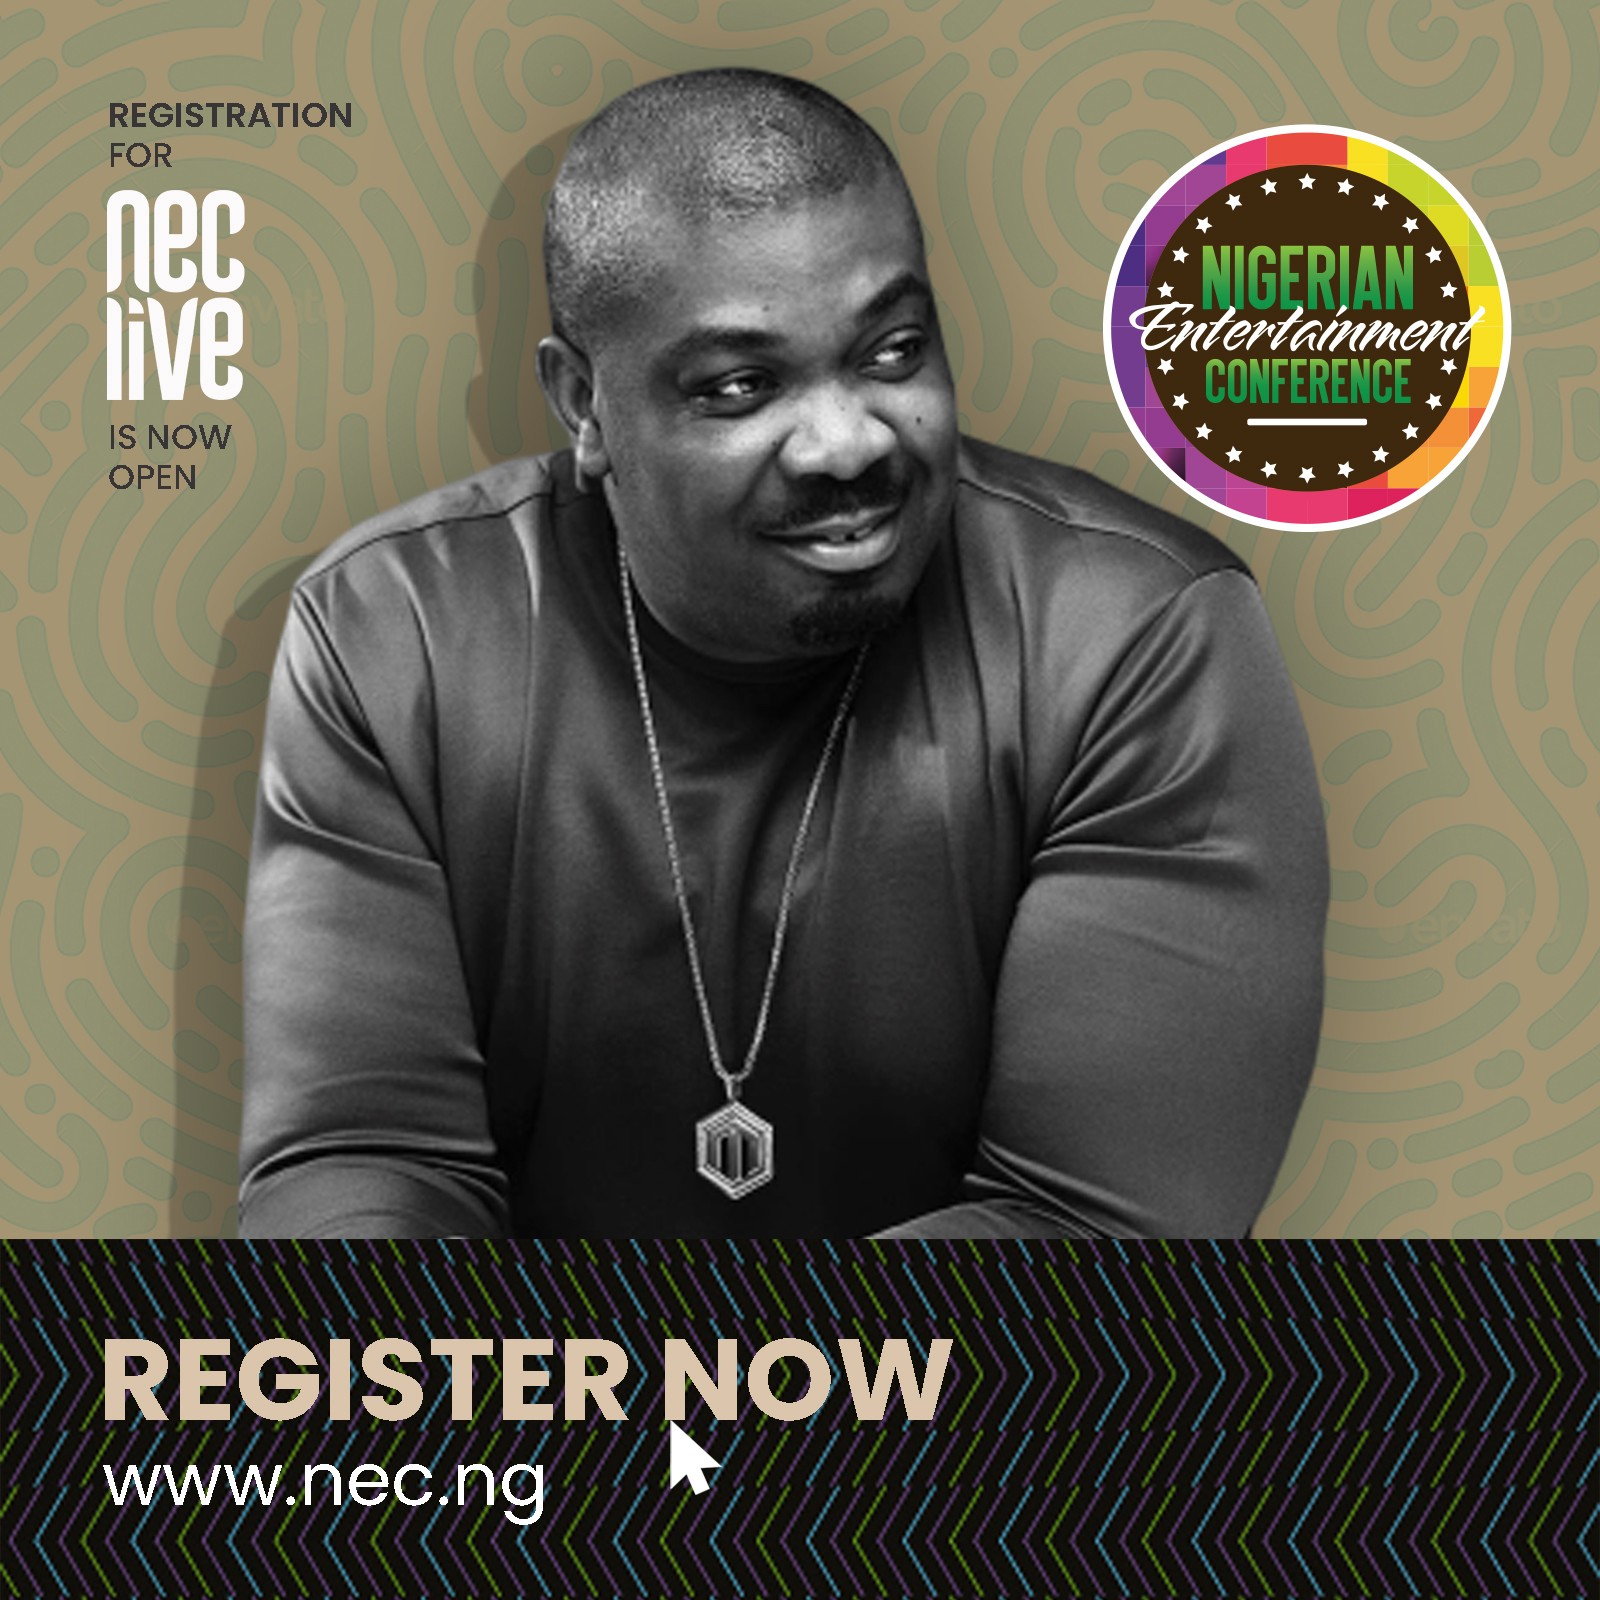 Registration Now Open for 8th Edition of Nigerian Entertainment Conference (NECLive) - Brand Spur